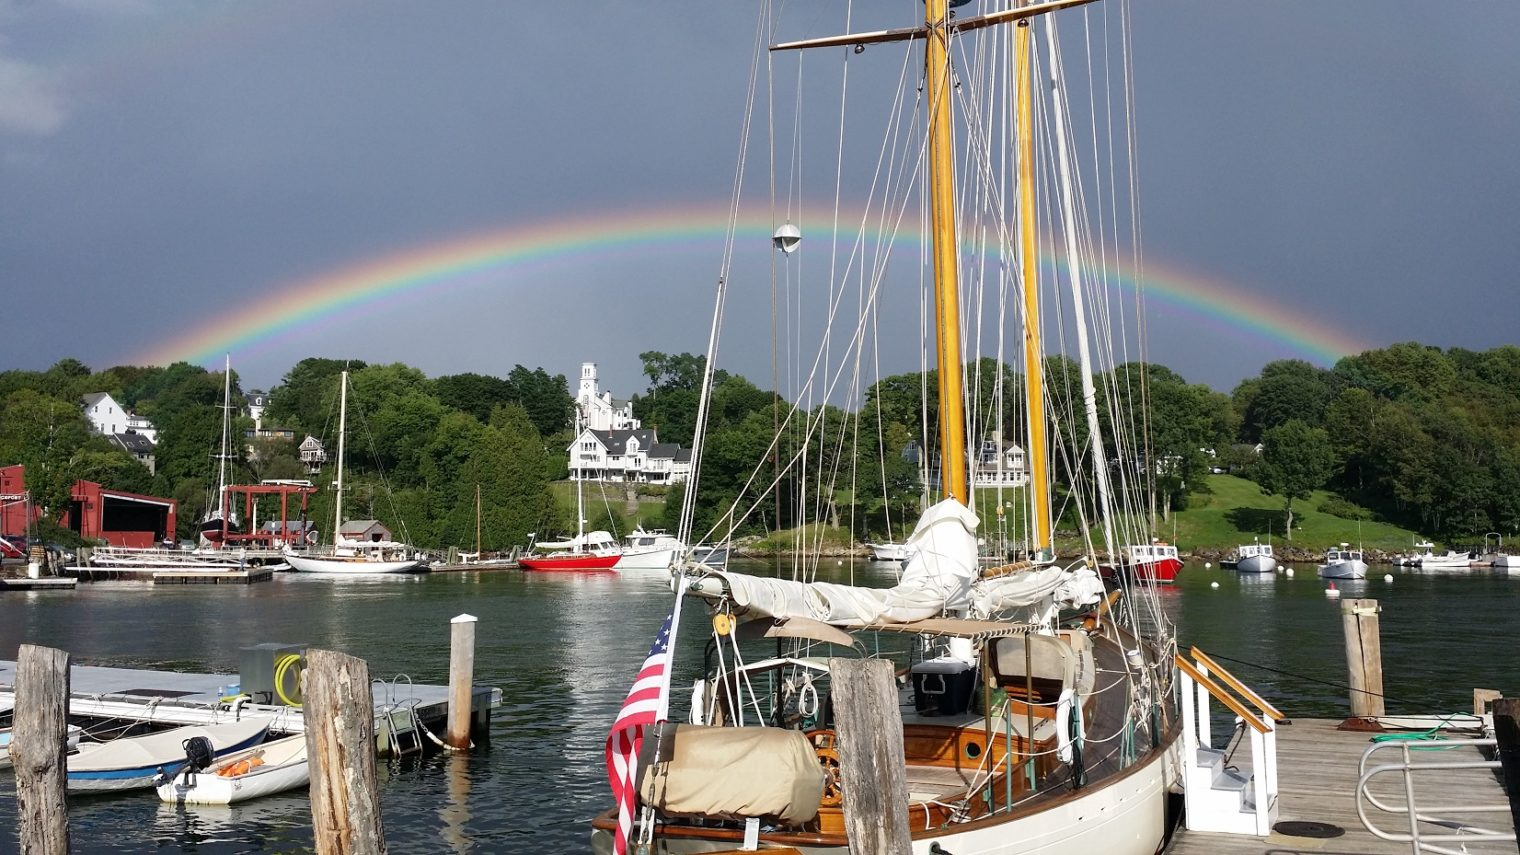 Rockport rainbow near Camden Maine Stay Inn